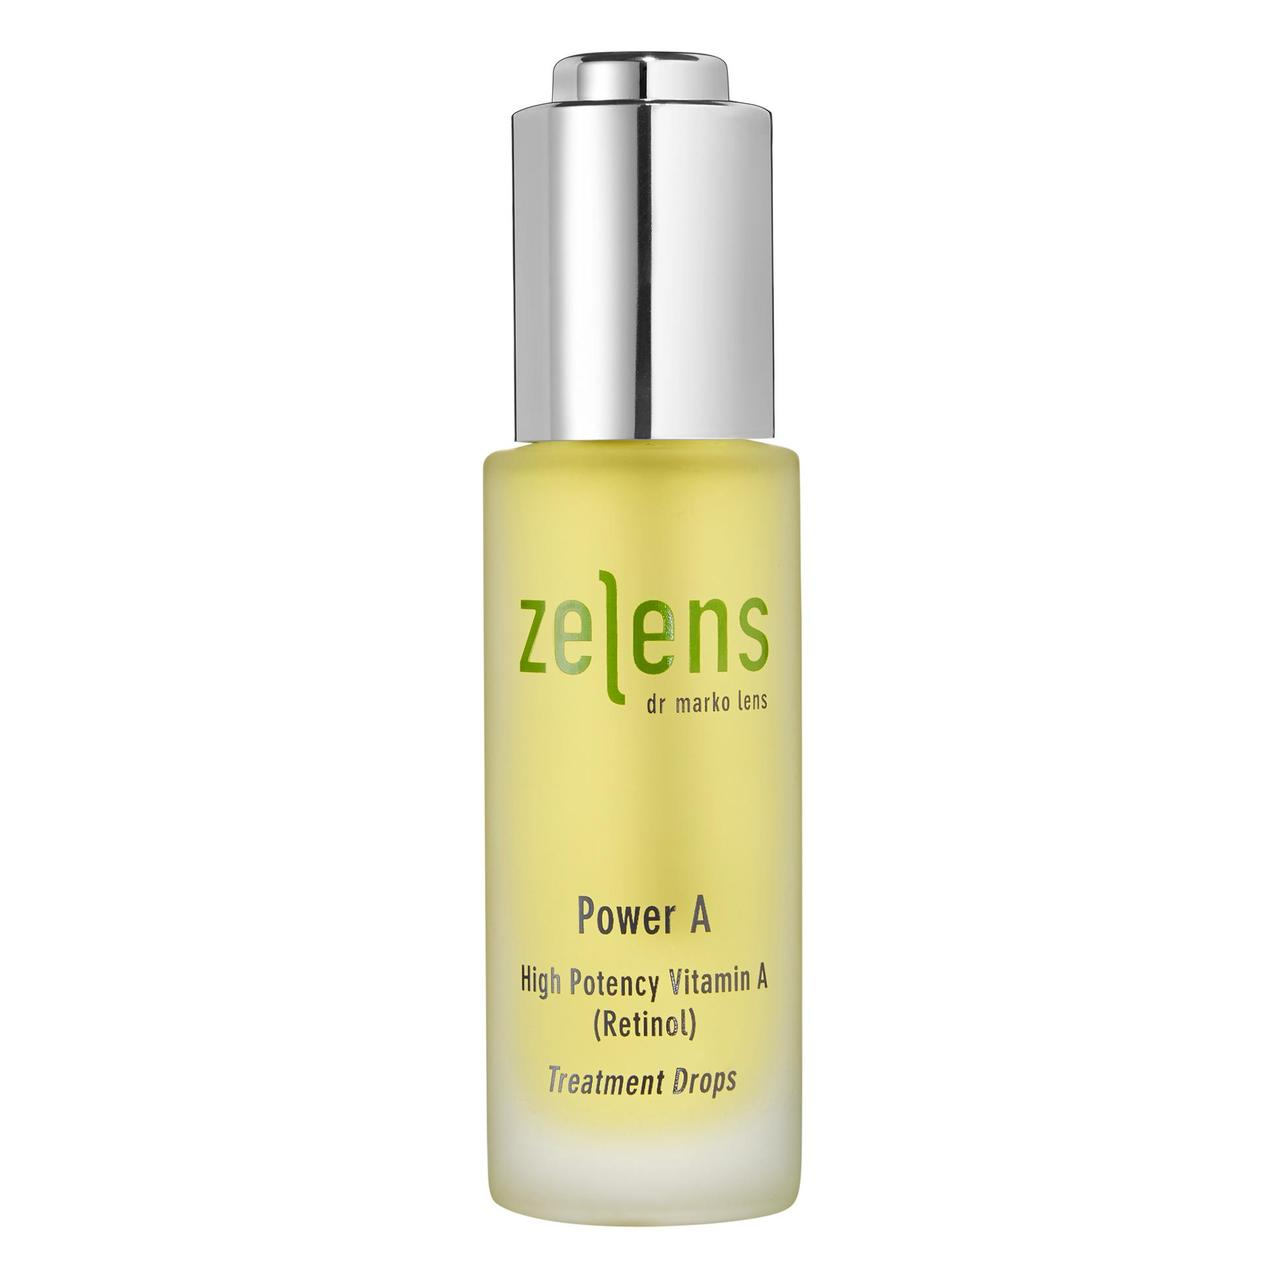 An image of Zelens Power A High Potency Vitamin A Treatment Drops